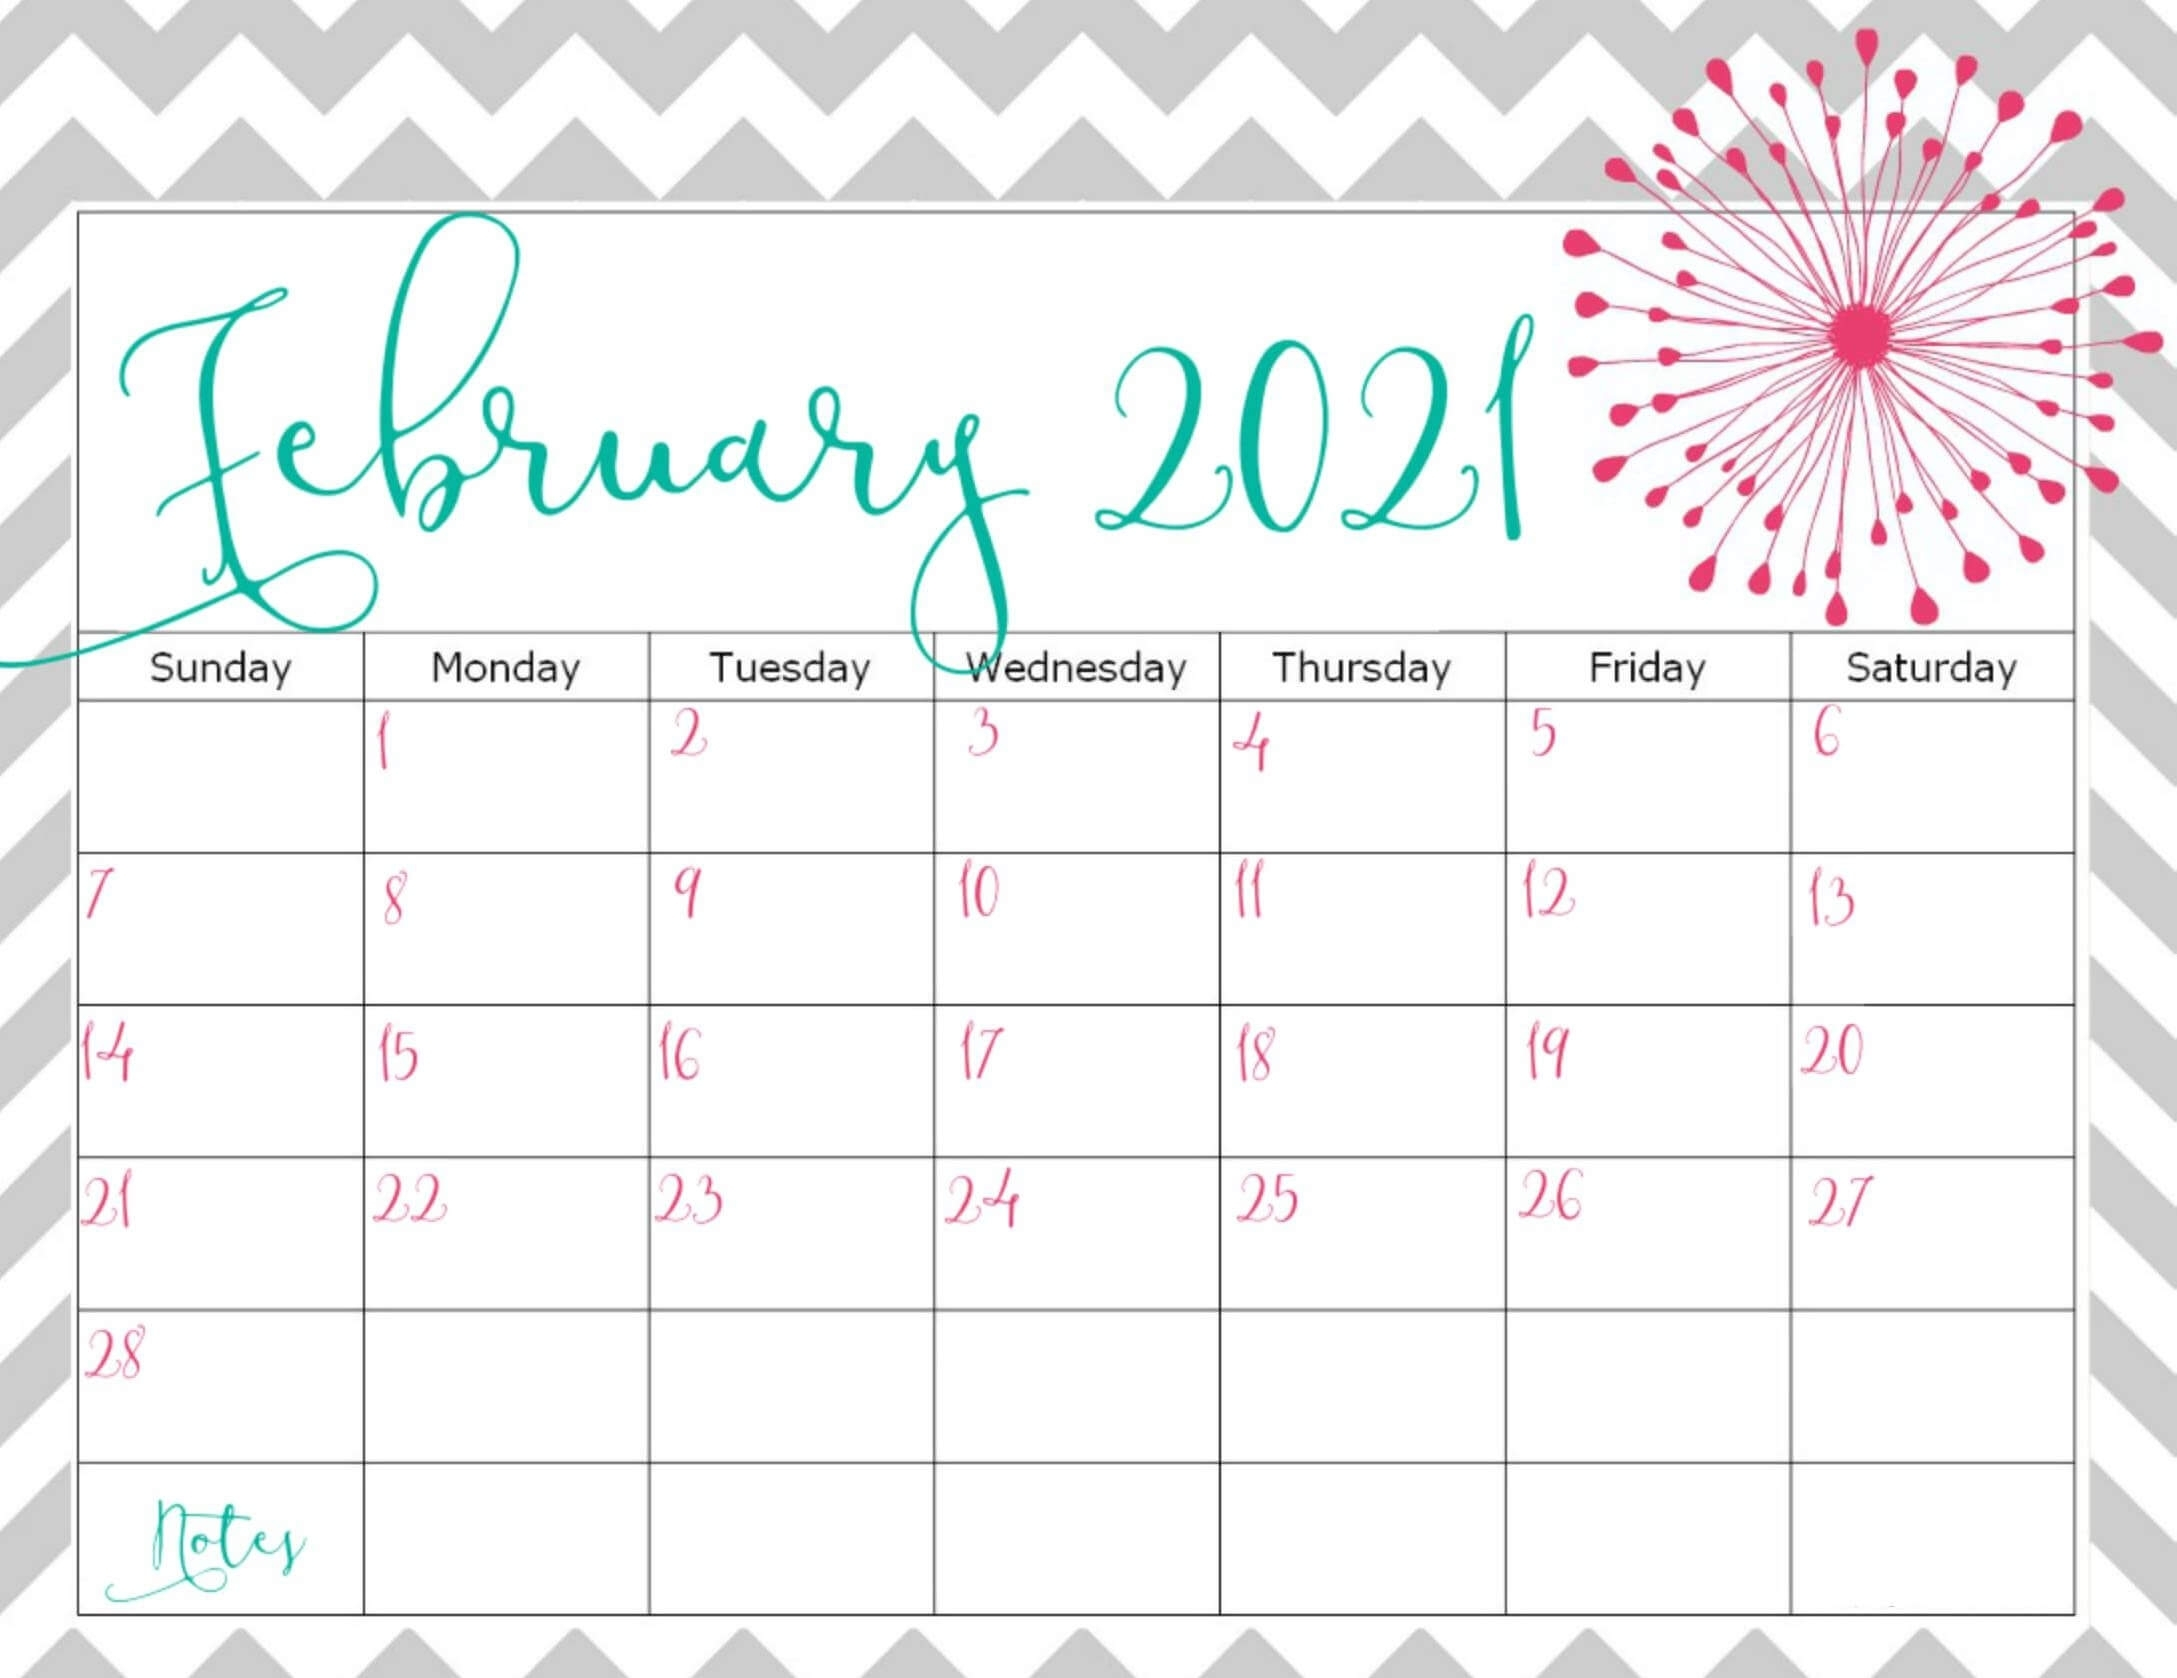 Monthly February 2021 Calendar Template Pdf Excel - Web